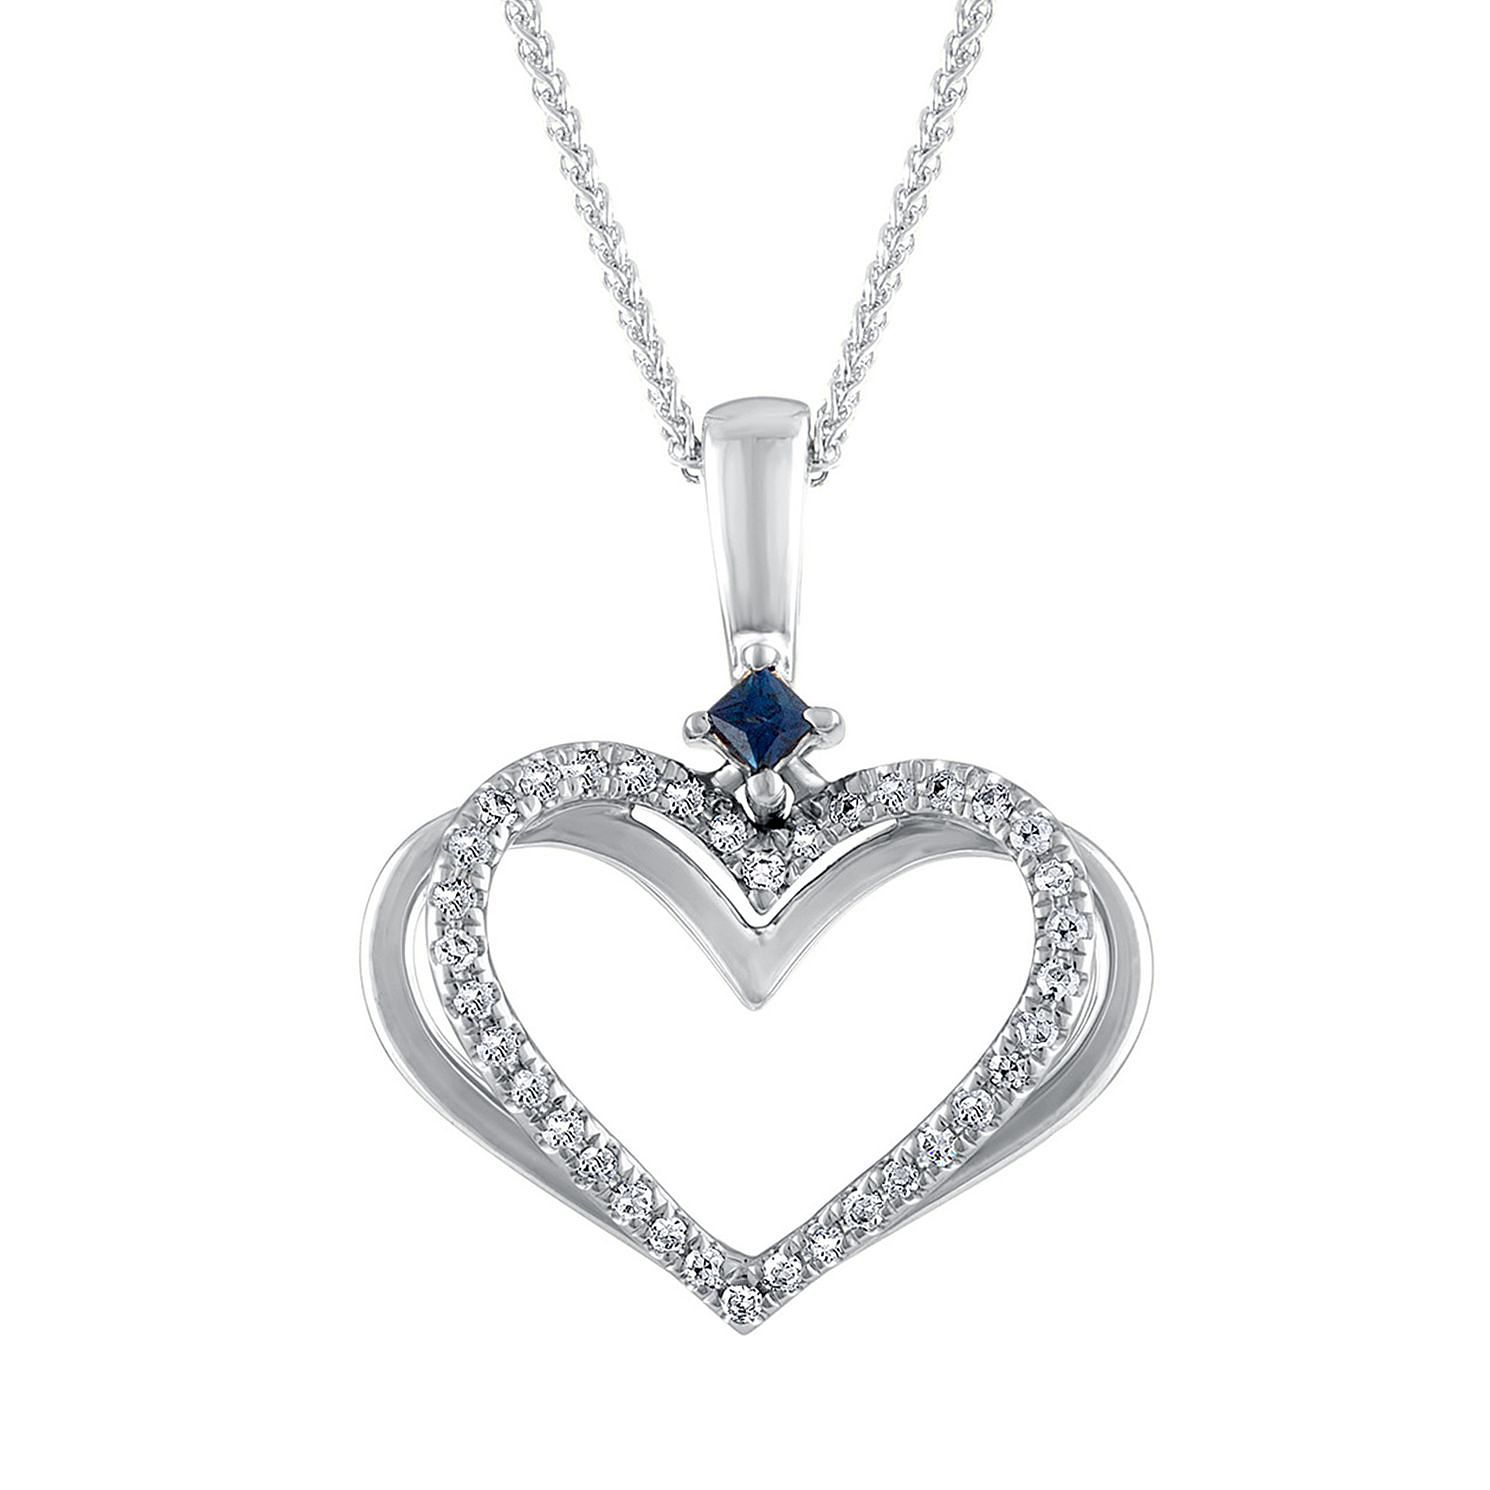 Vera Wang 18ct White Gold Diamond And Sapphire Heart Pendant - Product number 3334600